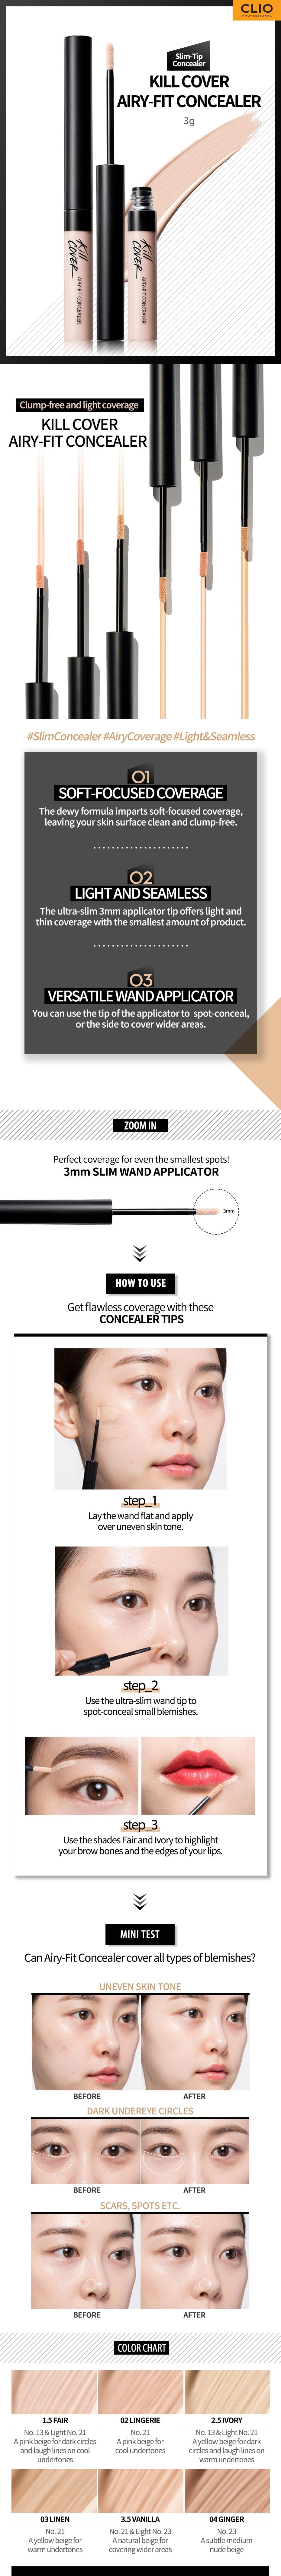 CLIO KillCover Airy Fit Concealer - No.1 Fair